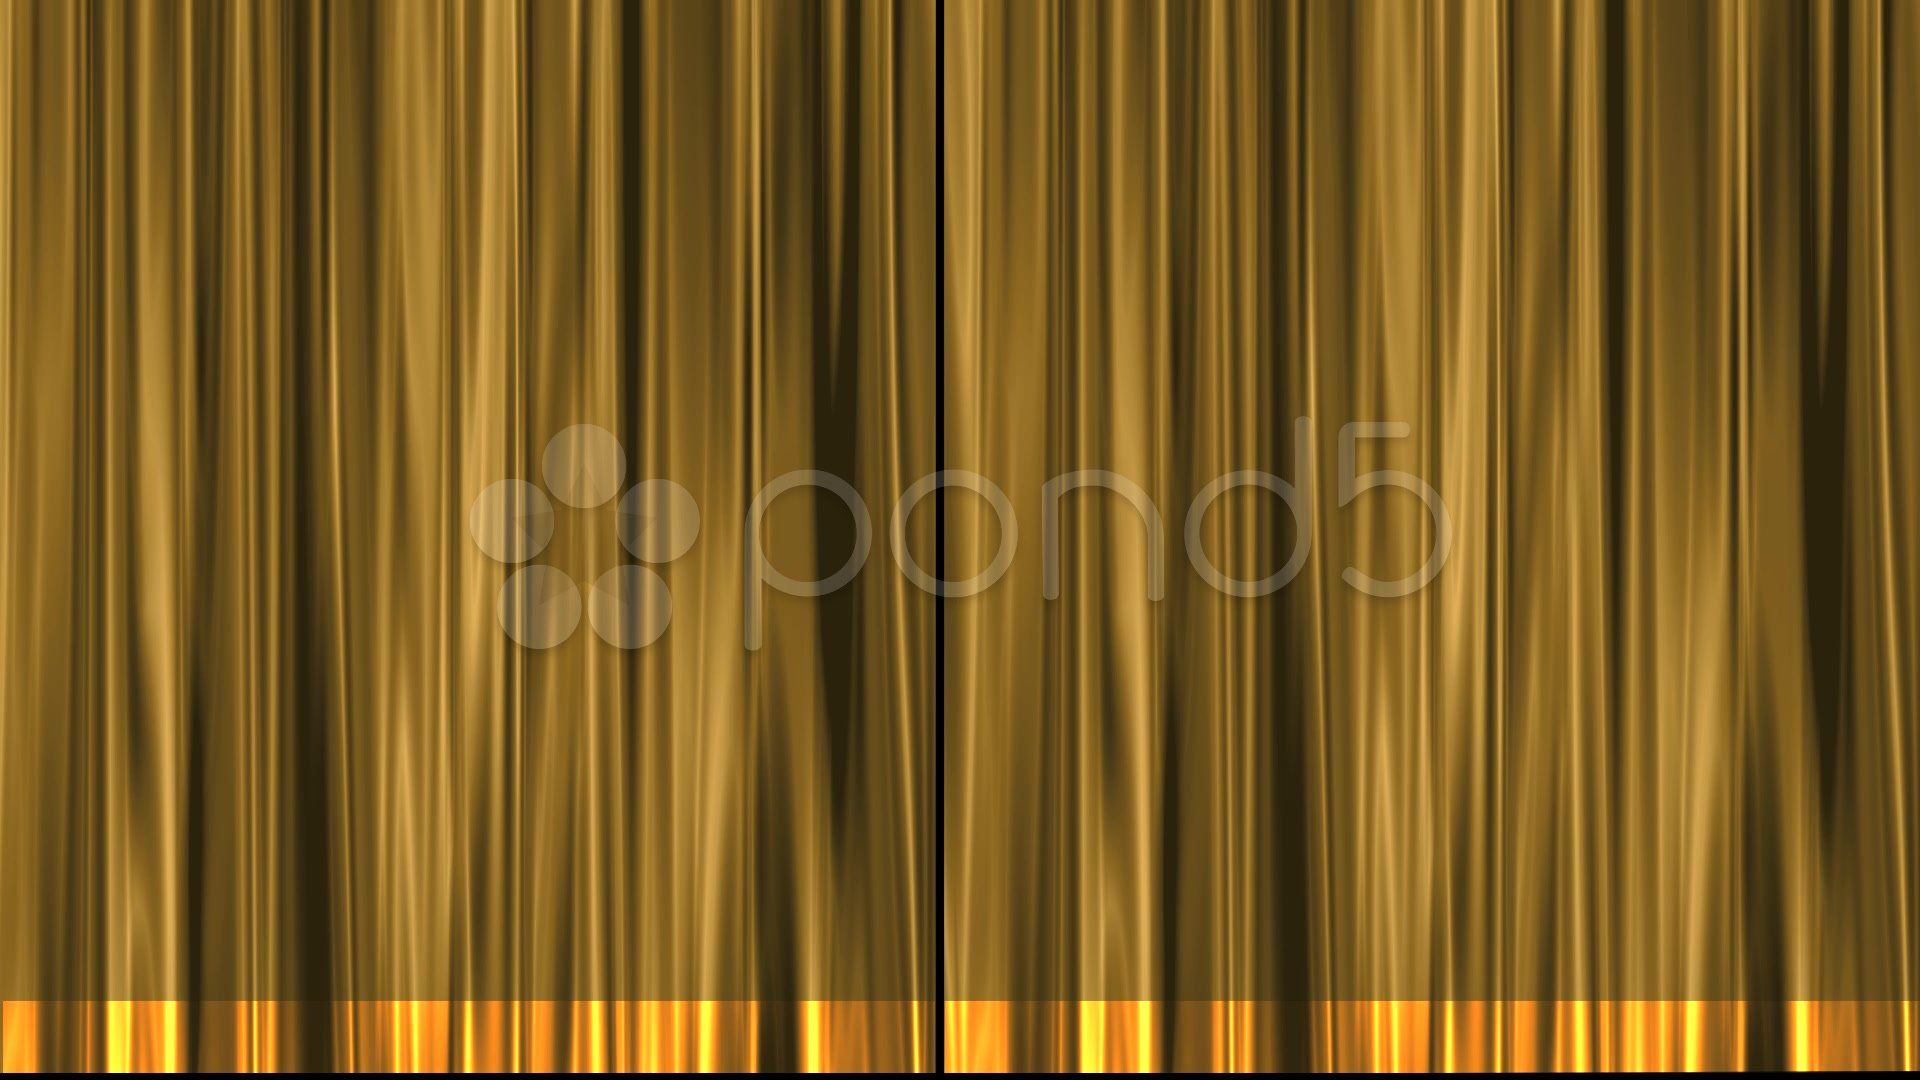 Image Result For Brown Curtains Png